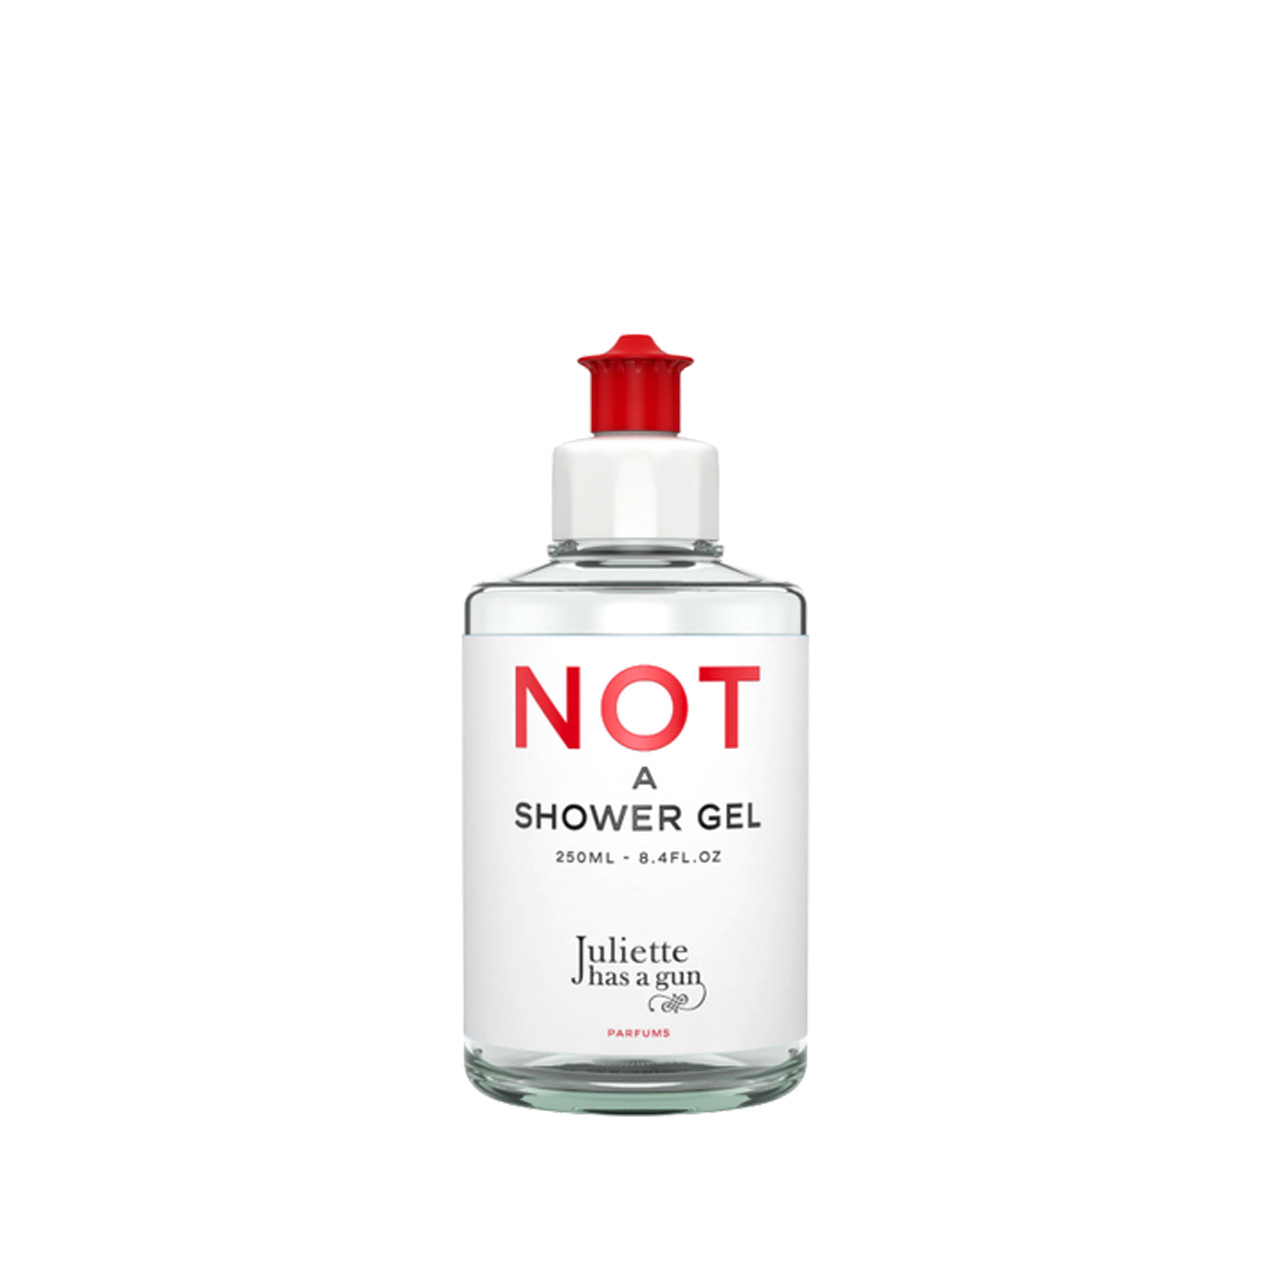 Not a Perfume - Shower Gel